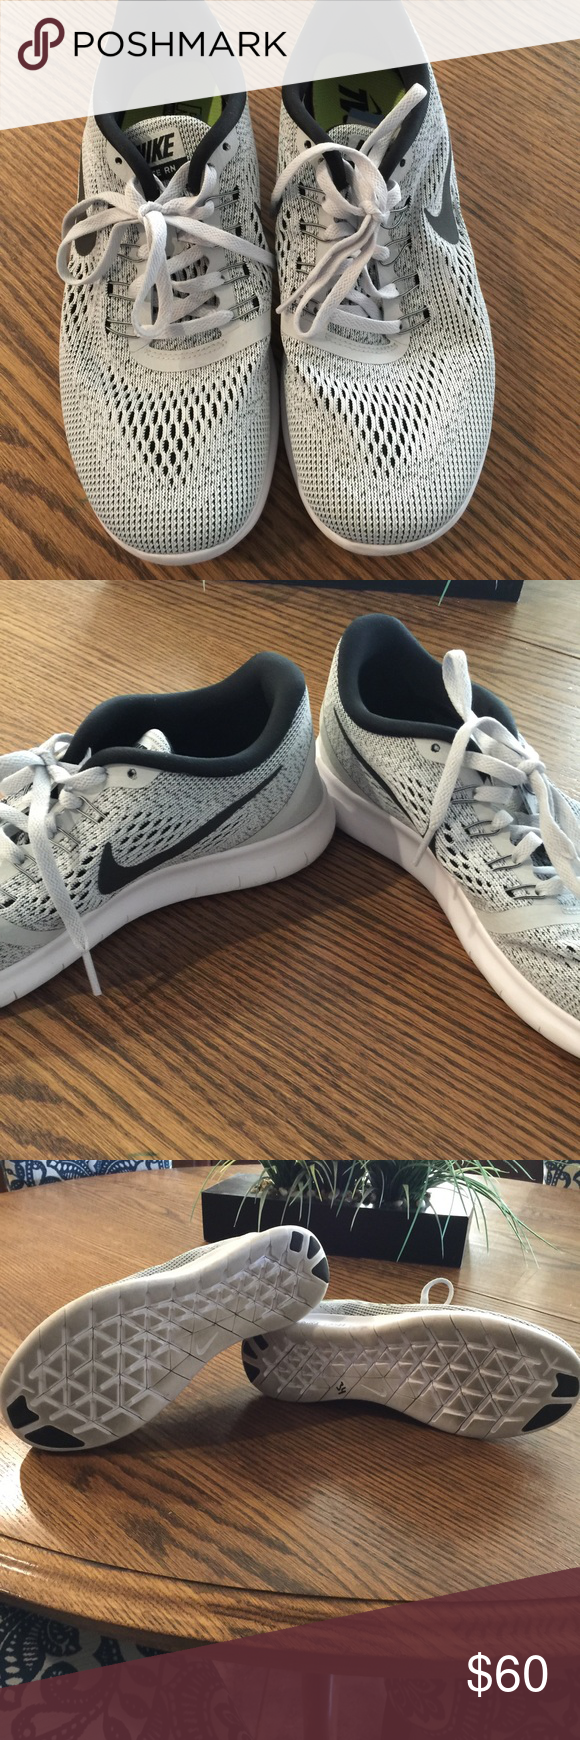 Nike Free Run size 8.5 Gray Nike Free Run tennis shoes. Hardly worn, excellent condition! Nike Shoes Athletic Shoes